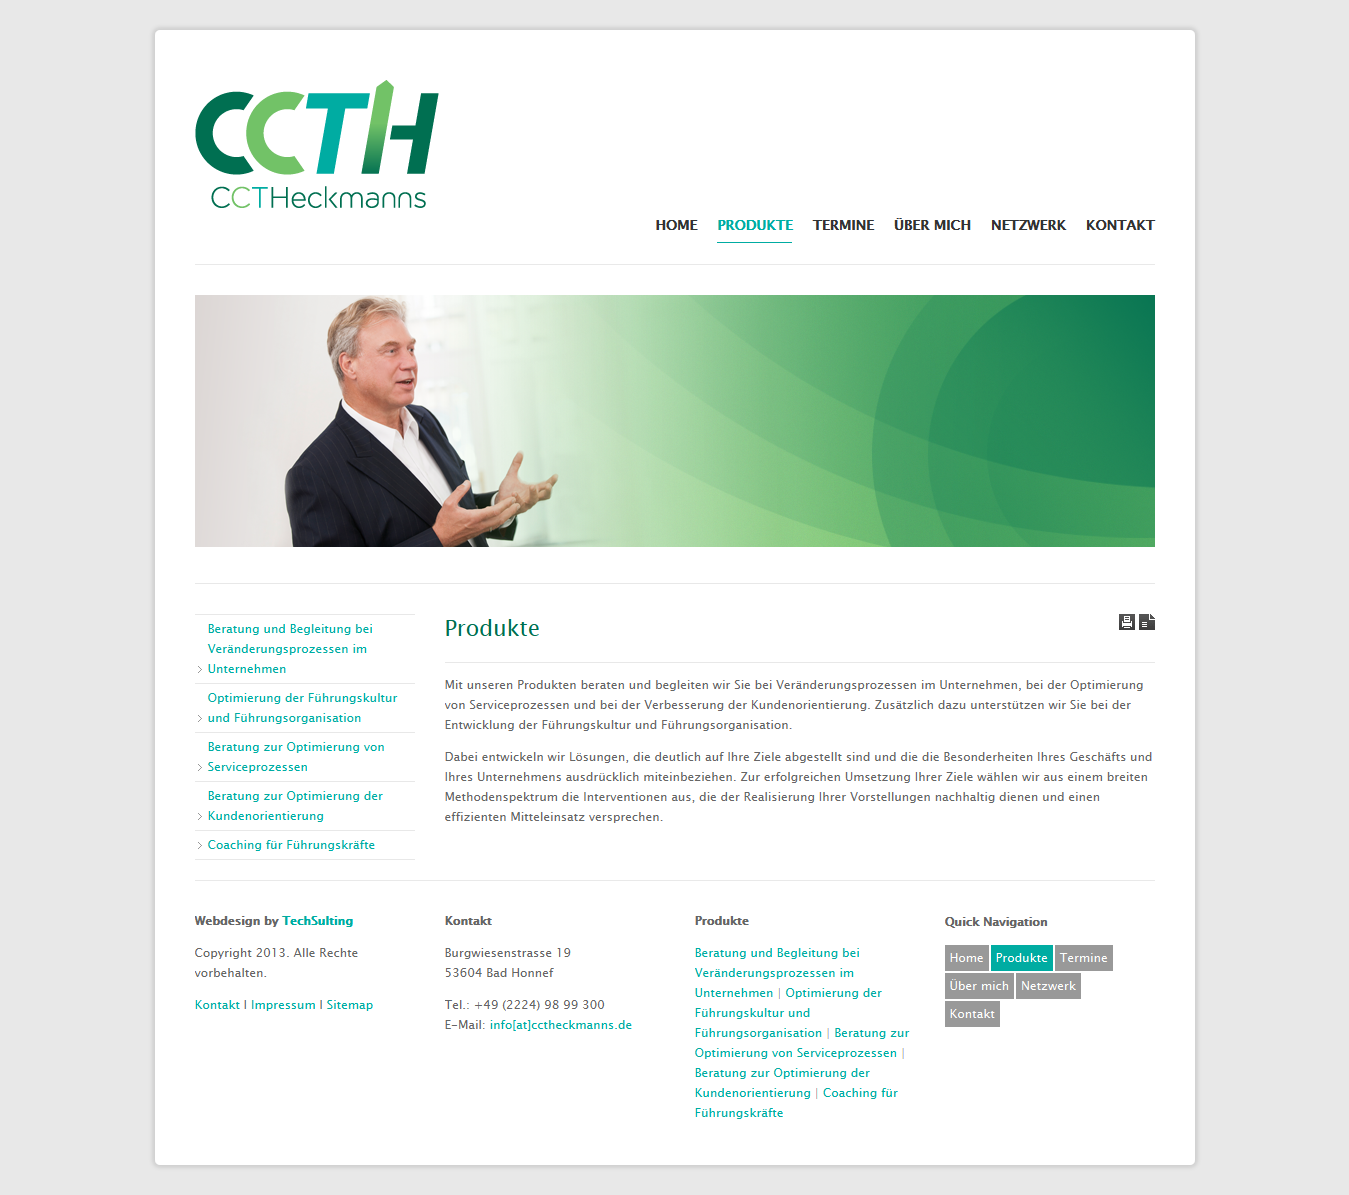 ccth-screenshot-2.png